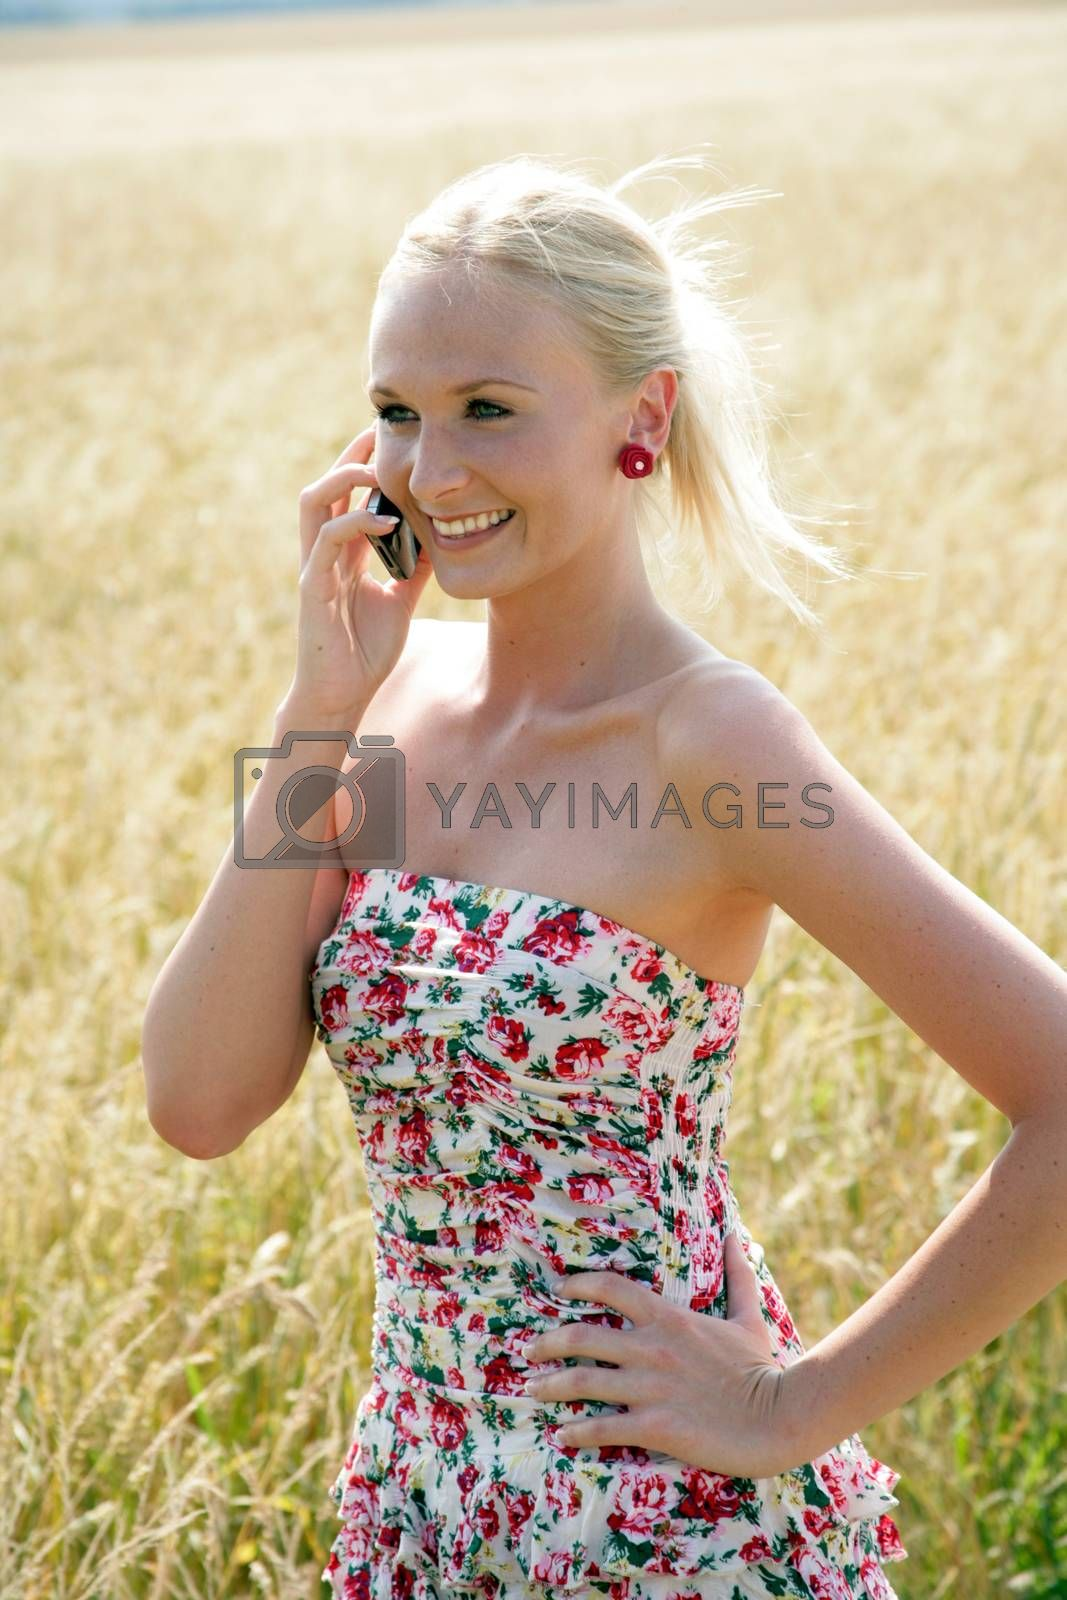 Young attractive woman is standing in a wheat field and speaks into her mobile phone. She looks happy and relaxed.